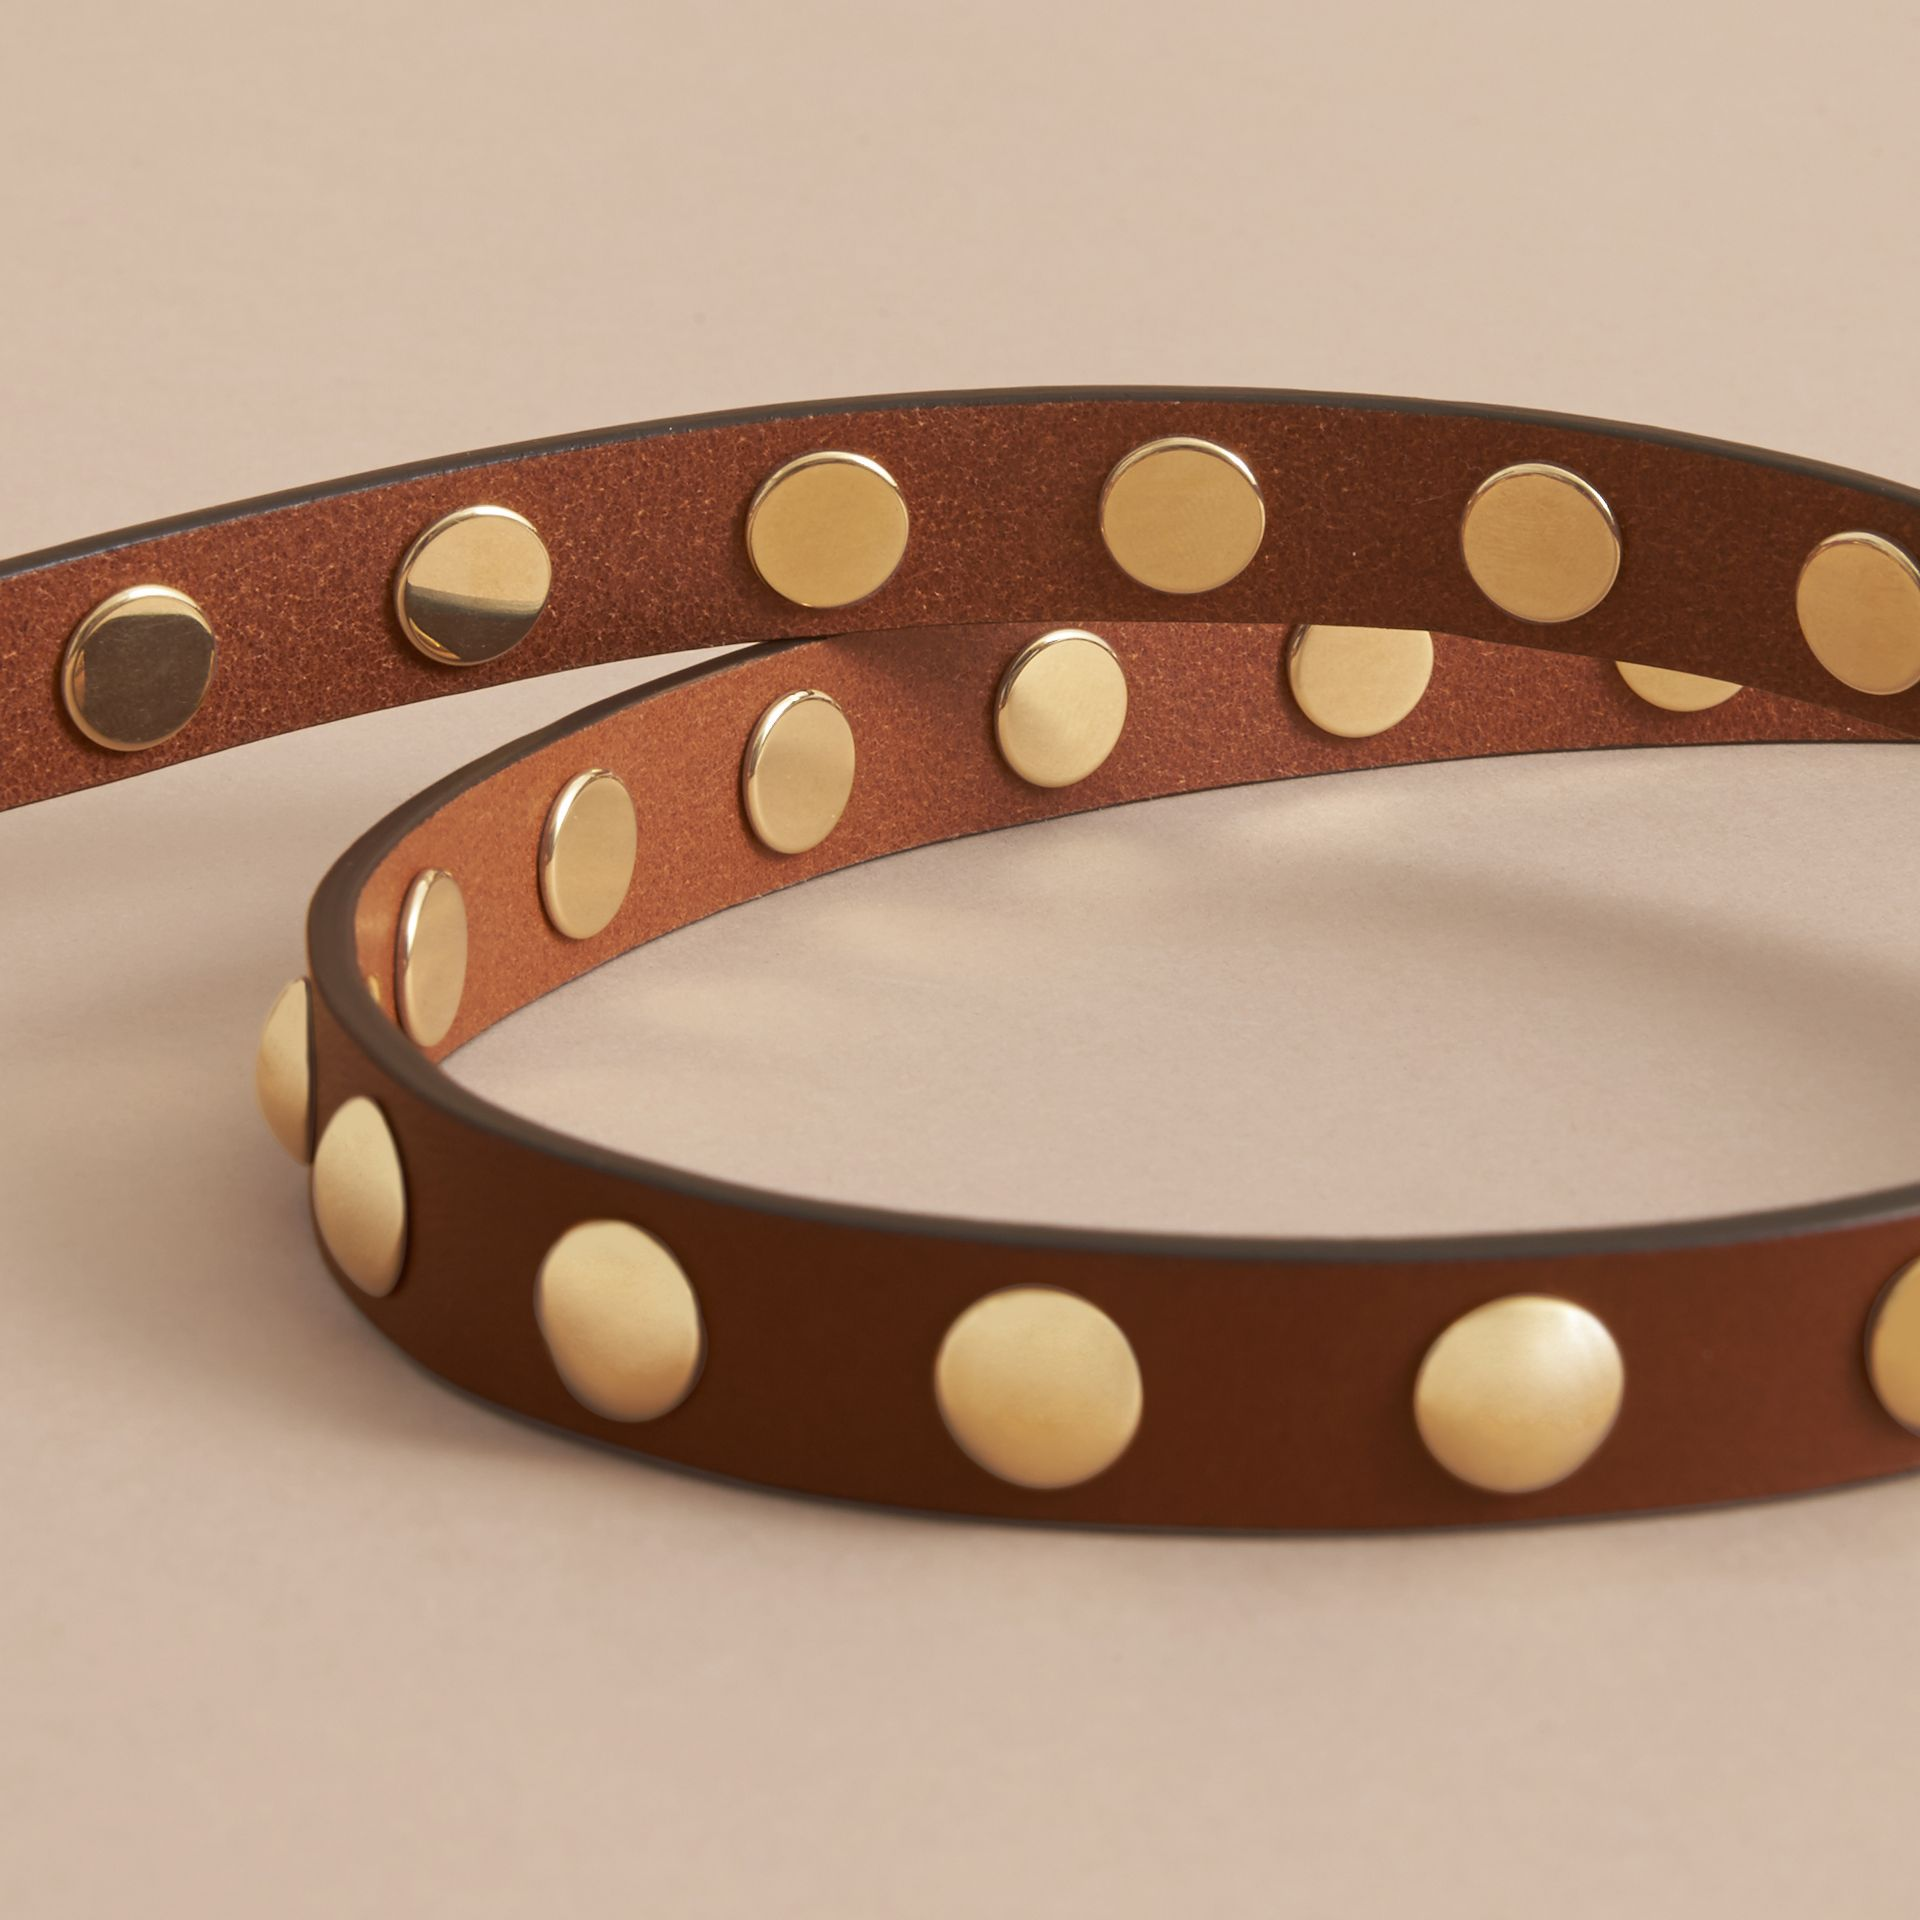 Studded Bridle Leather Double-wrap Belt in Tan - Women | Burberry Australia - gallery image 4